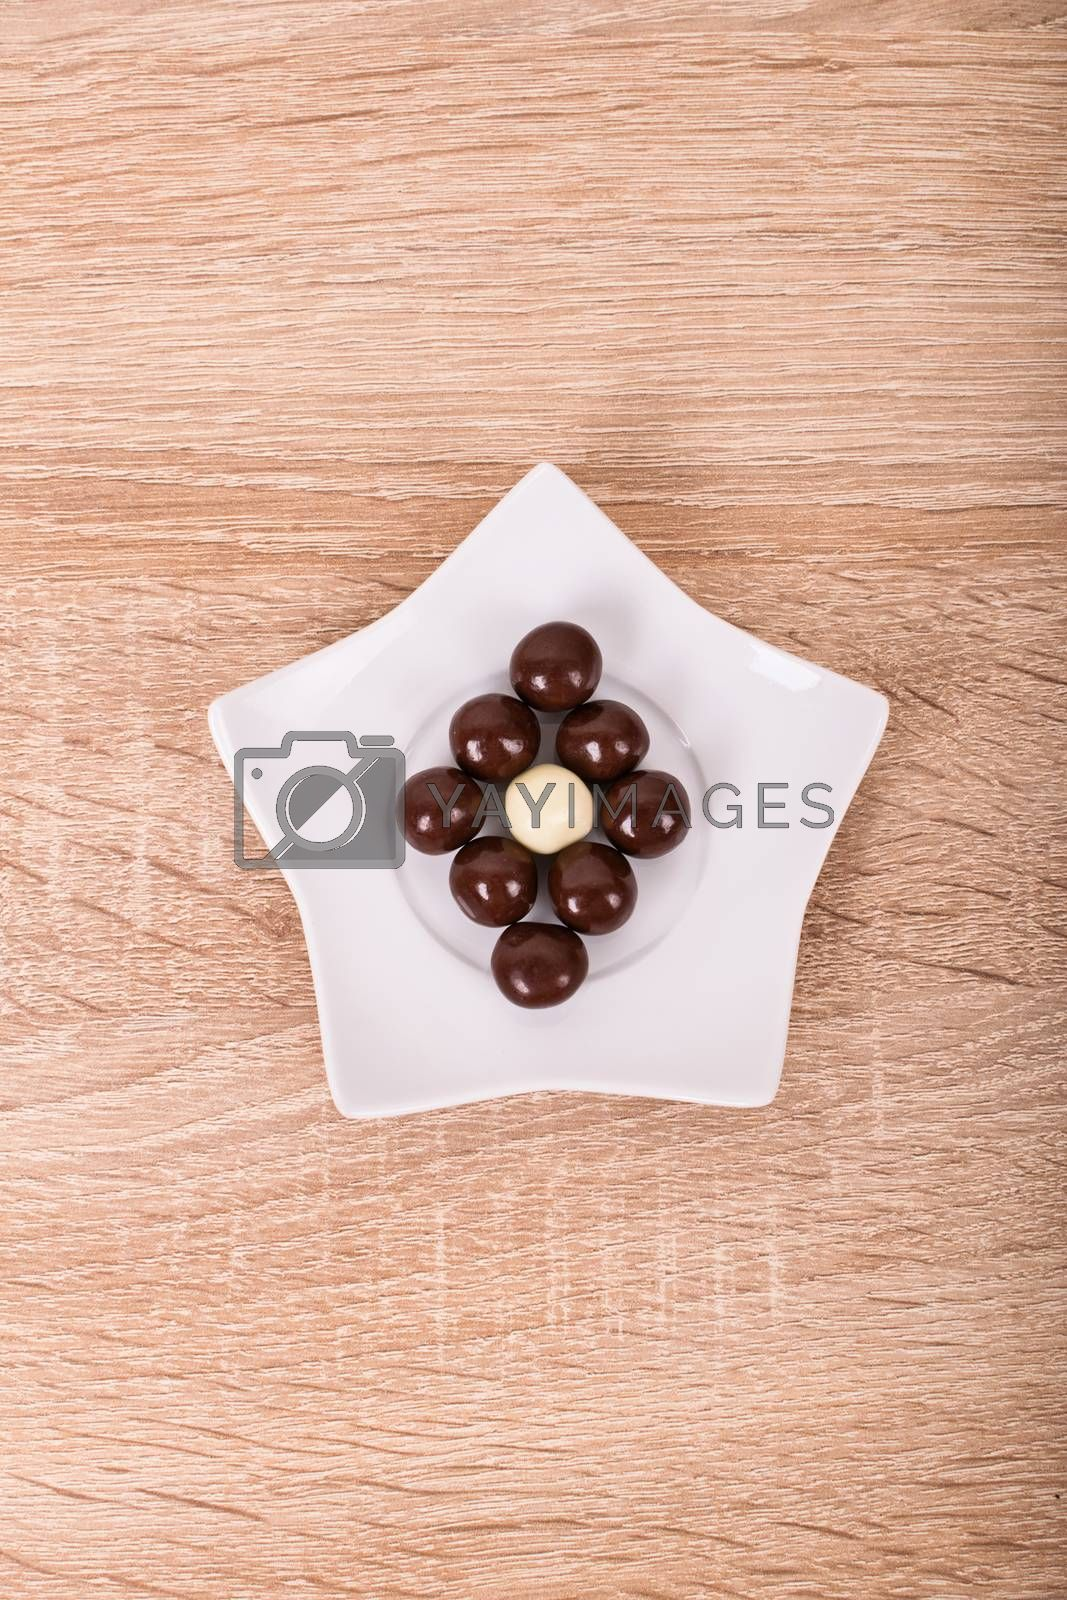 Chocolate balls on a star shaped ceramic white saucer, on a wooden background.